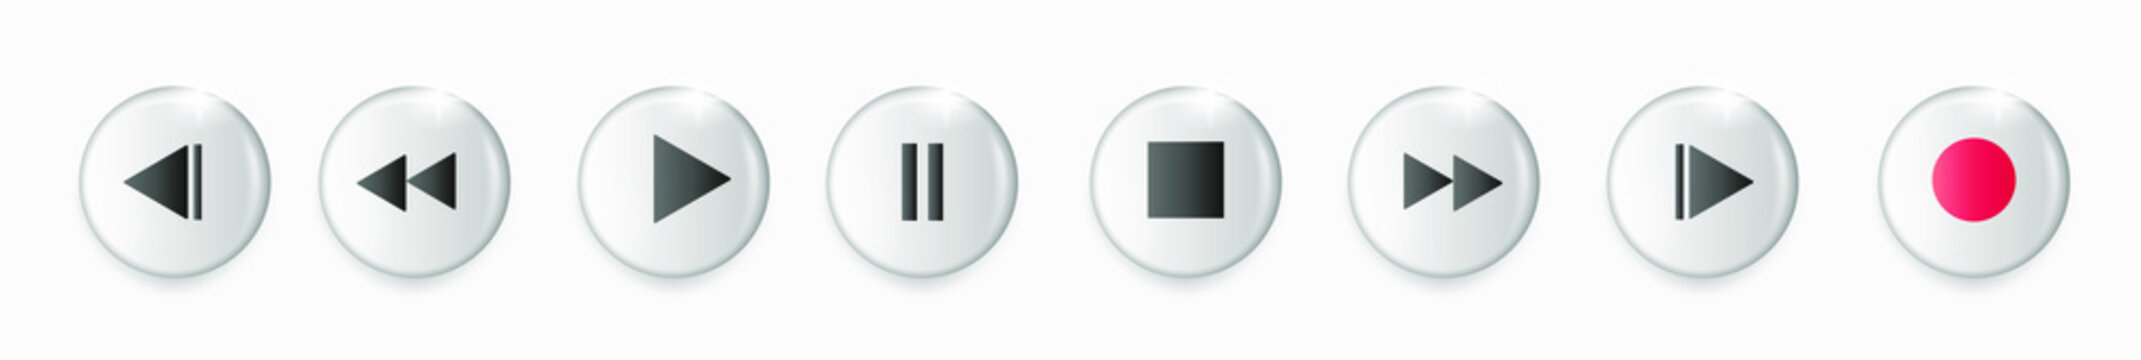 Set of volumetric media player button icons. Play and pause buttons, audio video player, player button icon, play and pause vector button. Vector illustration